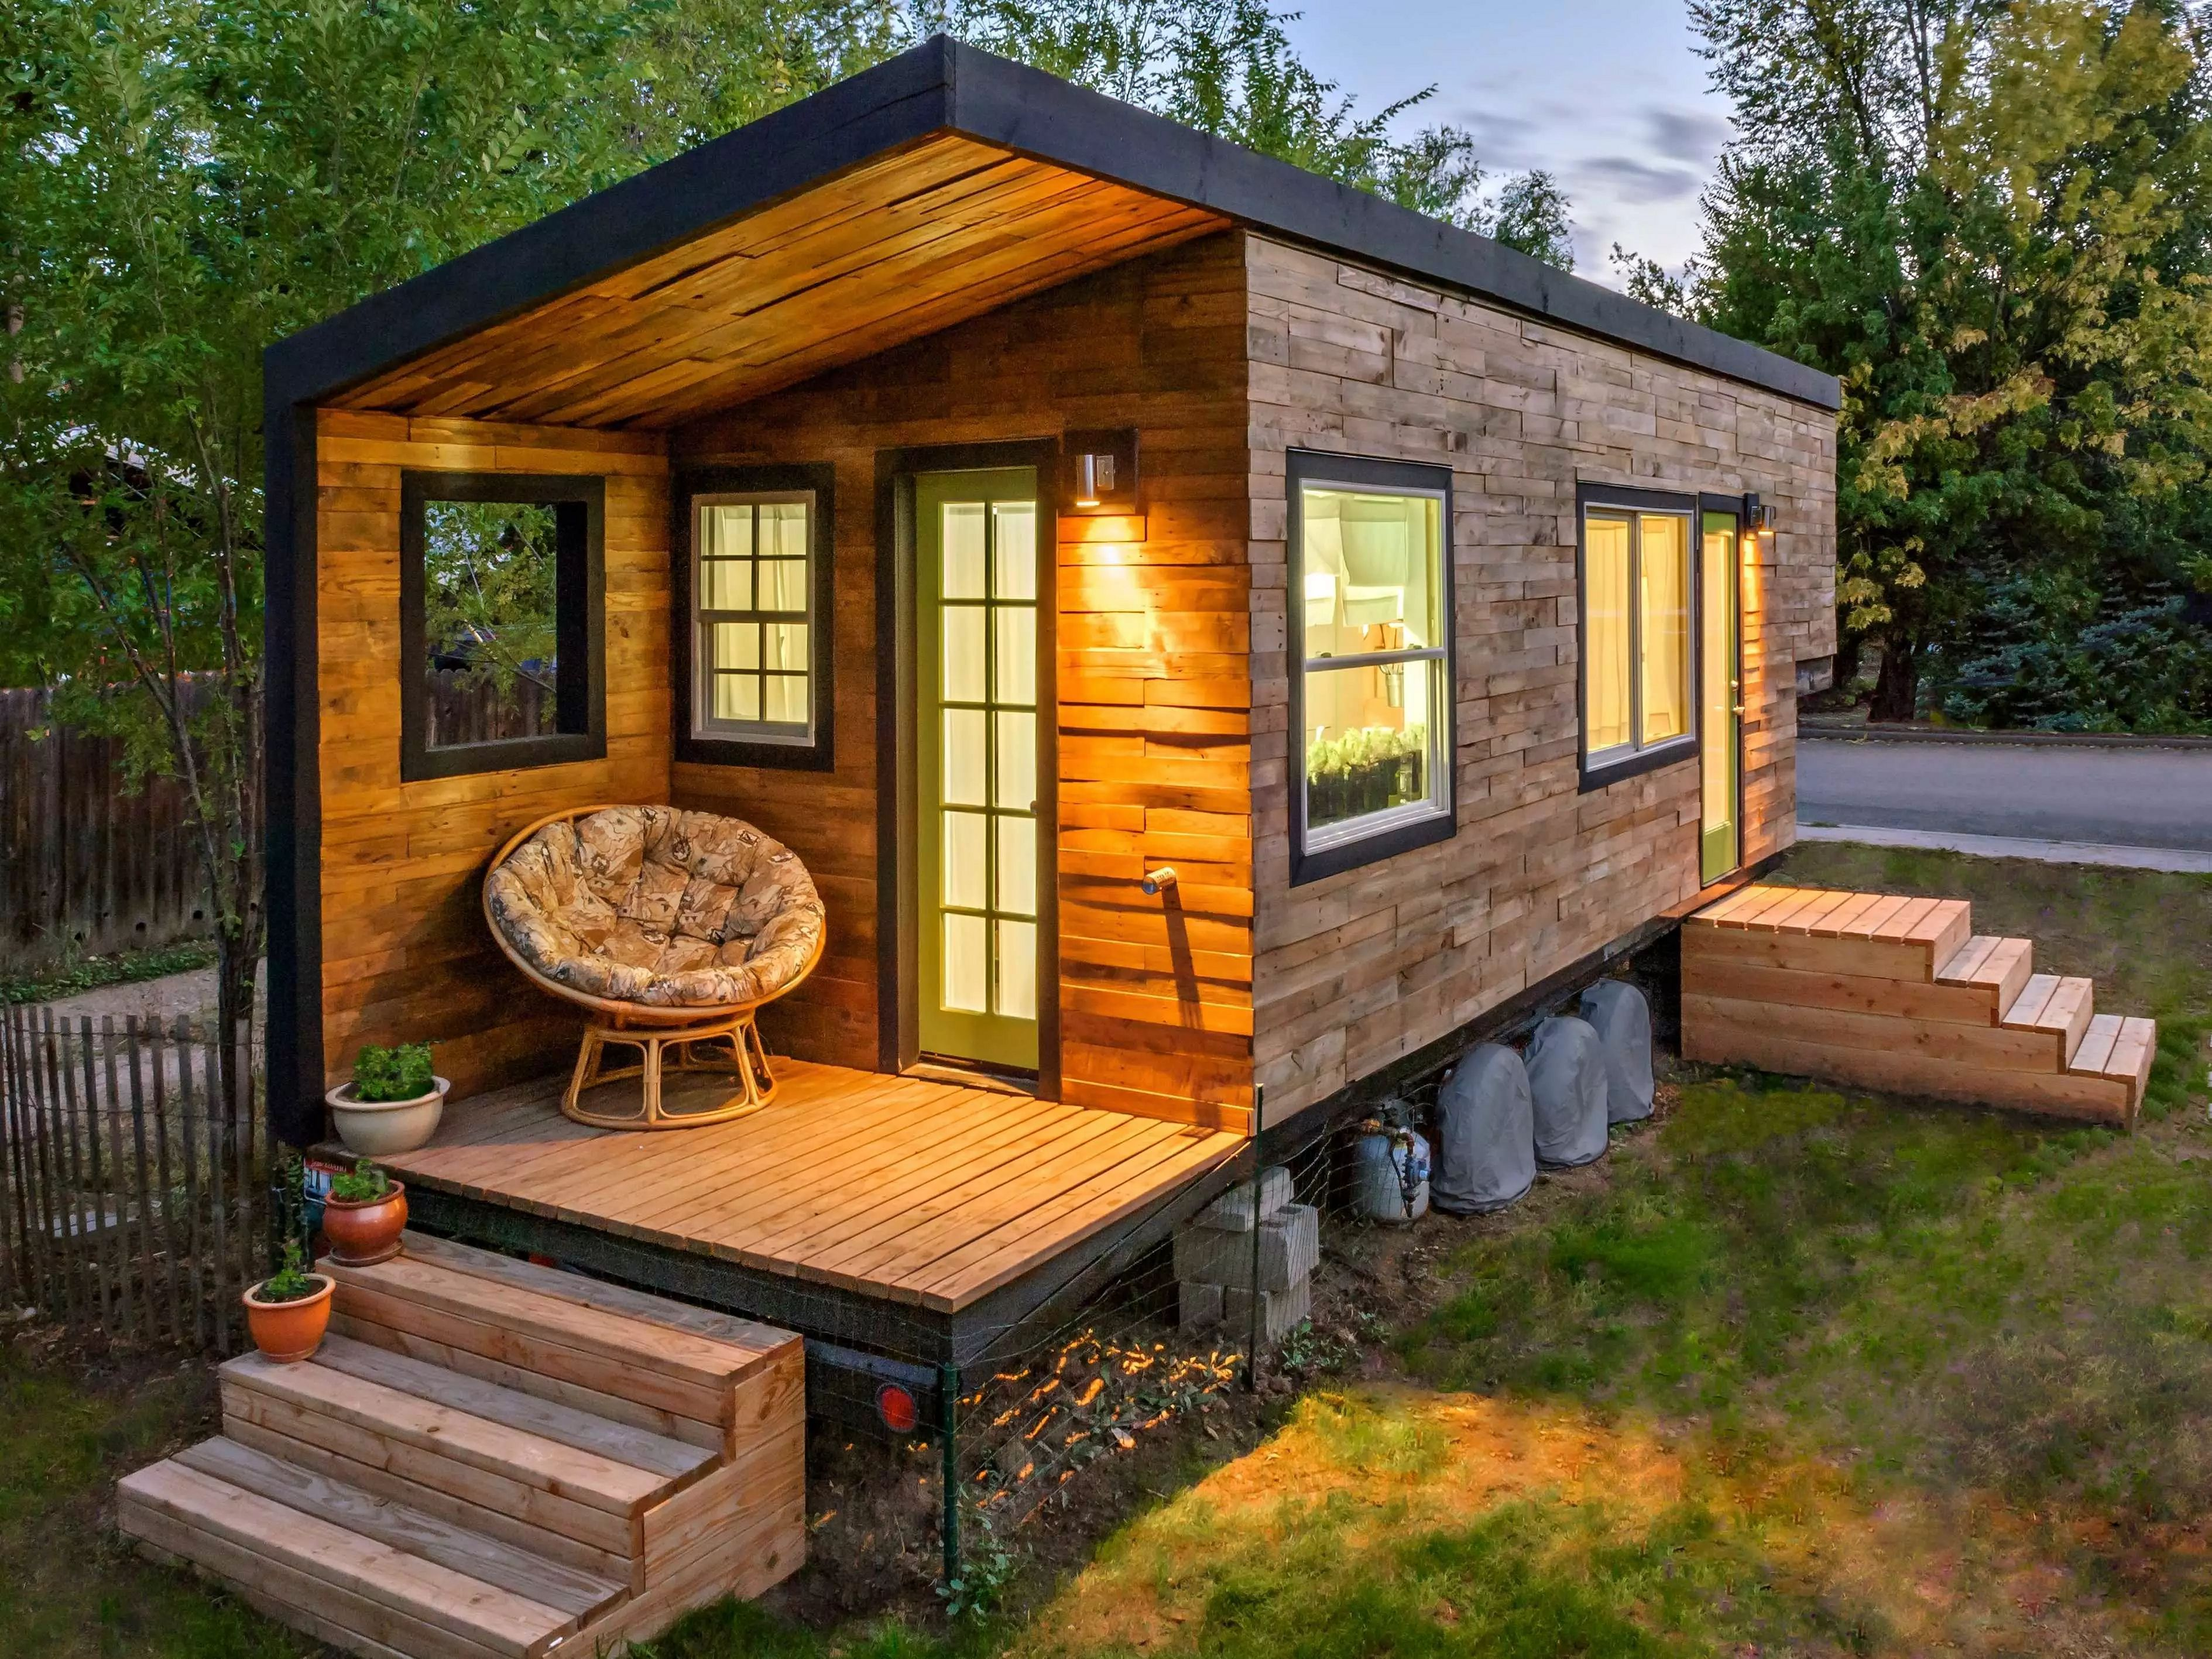 17 Rustic Tiny Home Exterior Ideas For Best Inspiration Wooden House Design Best Tiny House Modern Tiny House